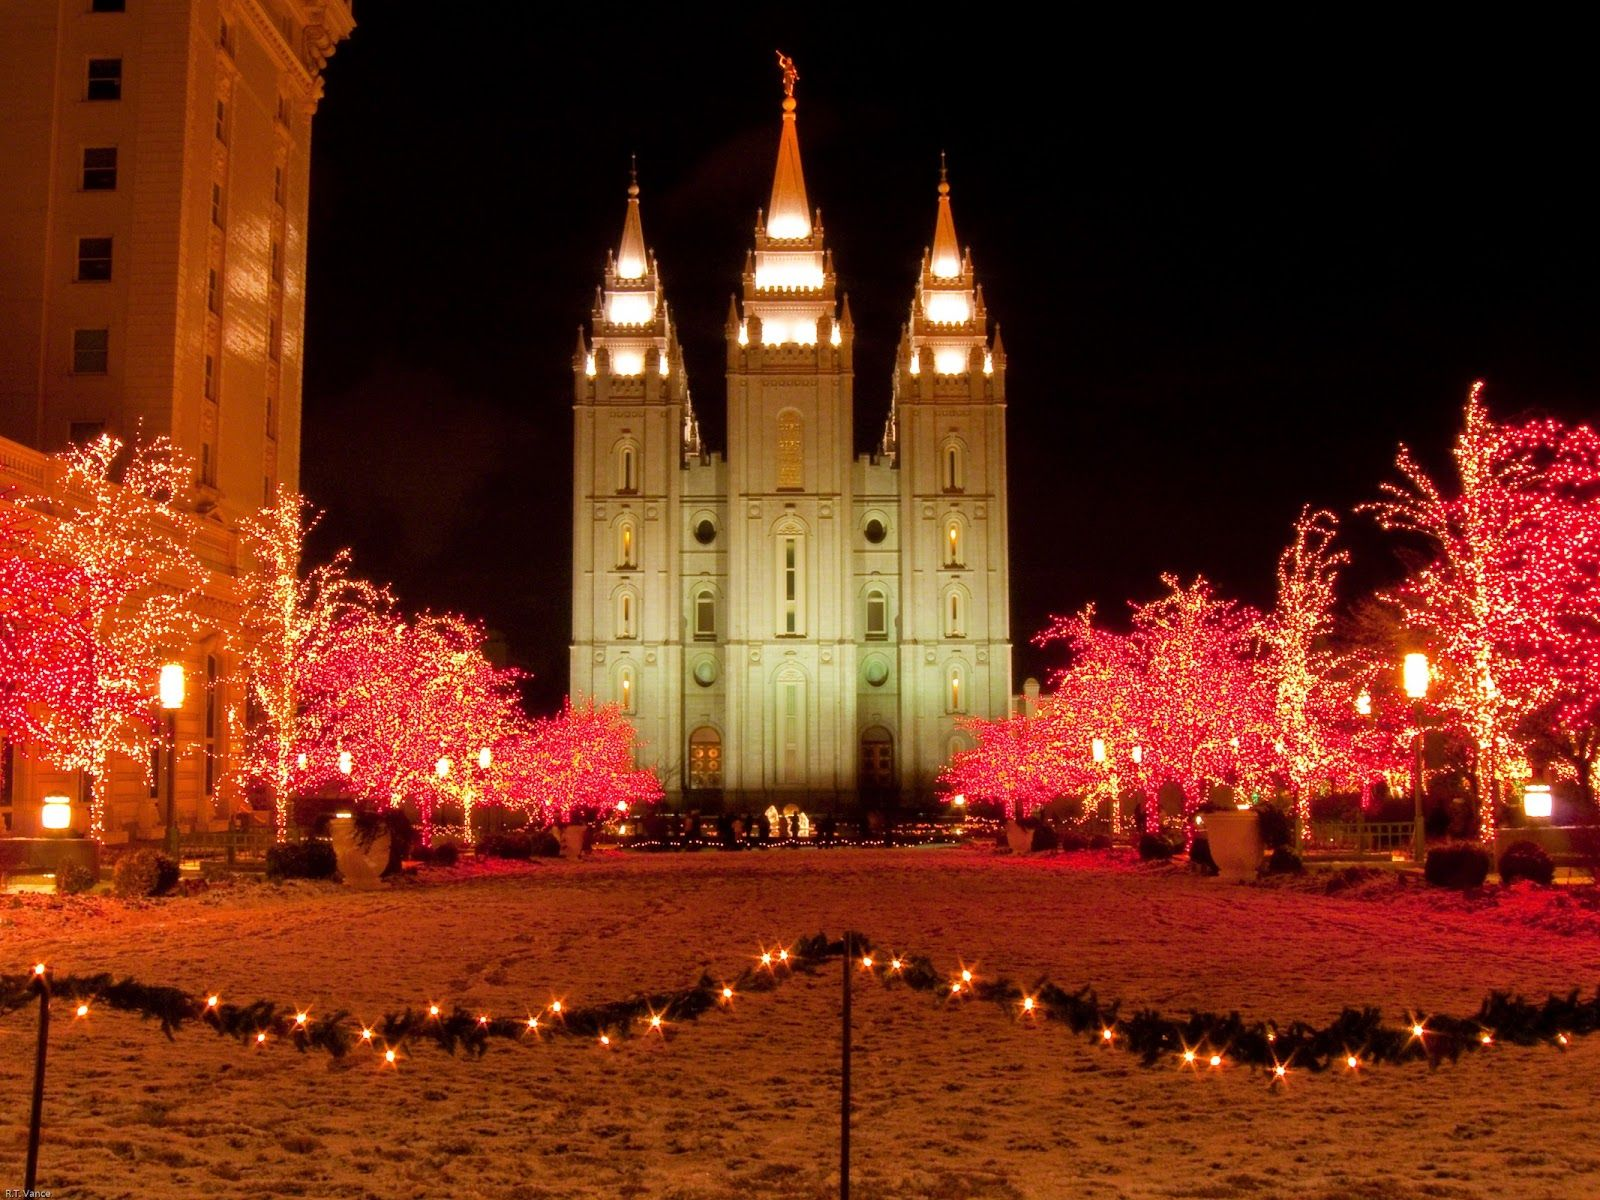 8 Facts About The Best Christmas Lights In Utah Temple Square Temple Square Christmas Temple Square Christmas Lights Best Christmas Lights